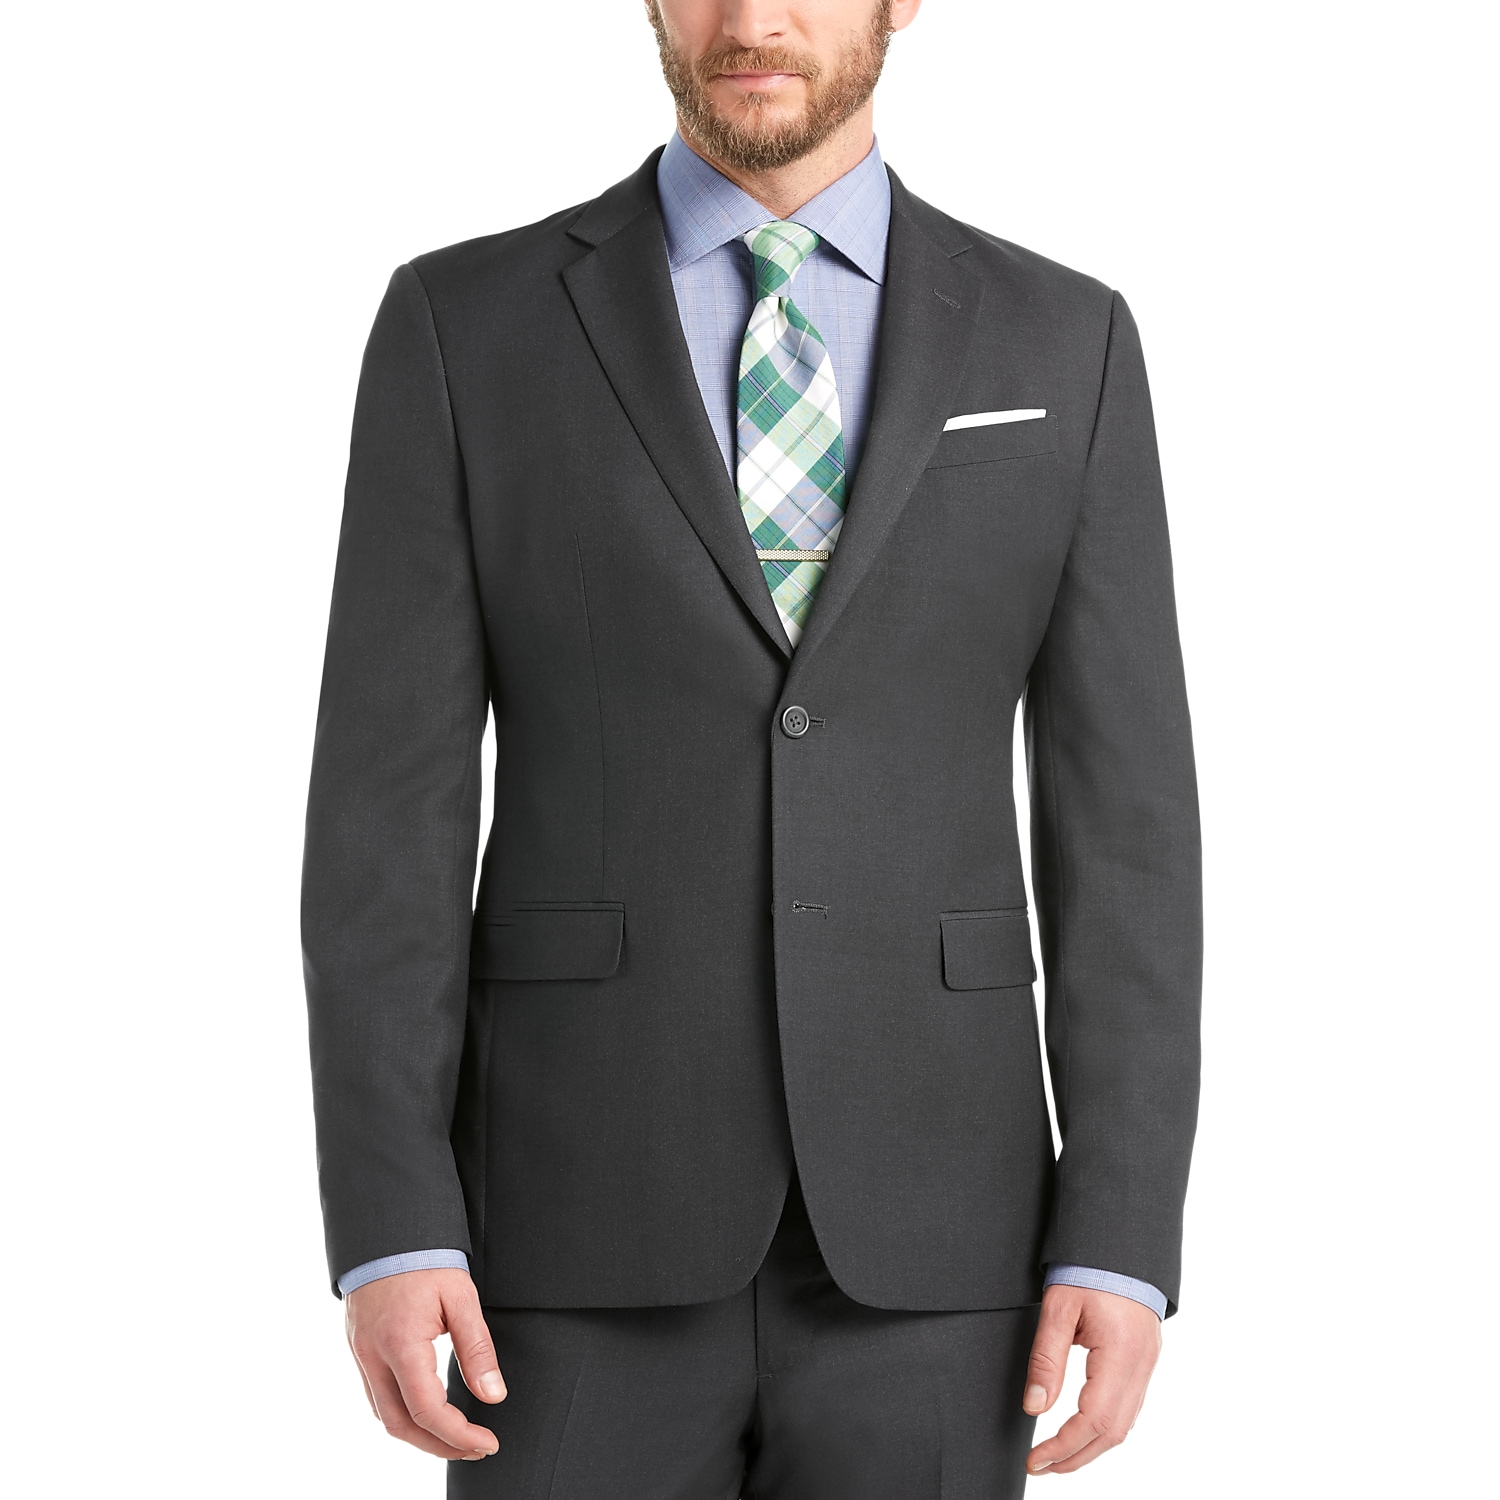 Egara Charcoal Gray Extreme Slim Fit Suit - Men's Extreme Slim Fit ...